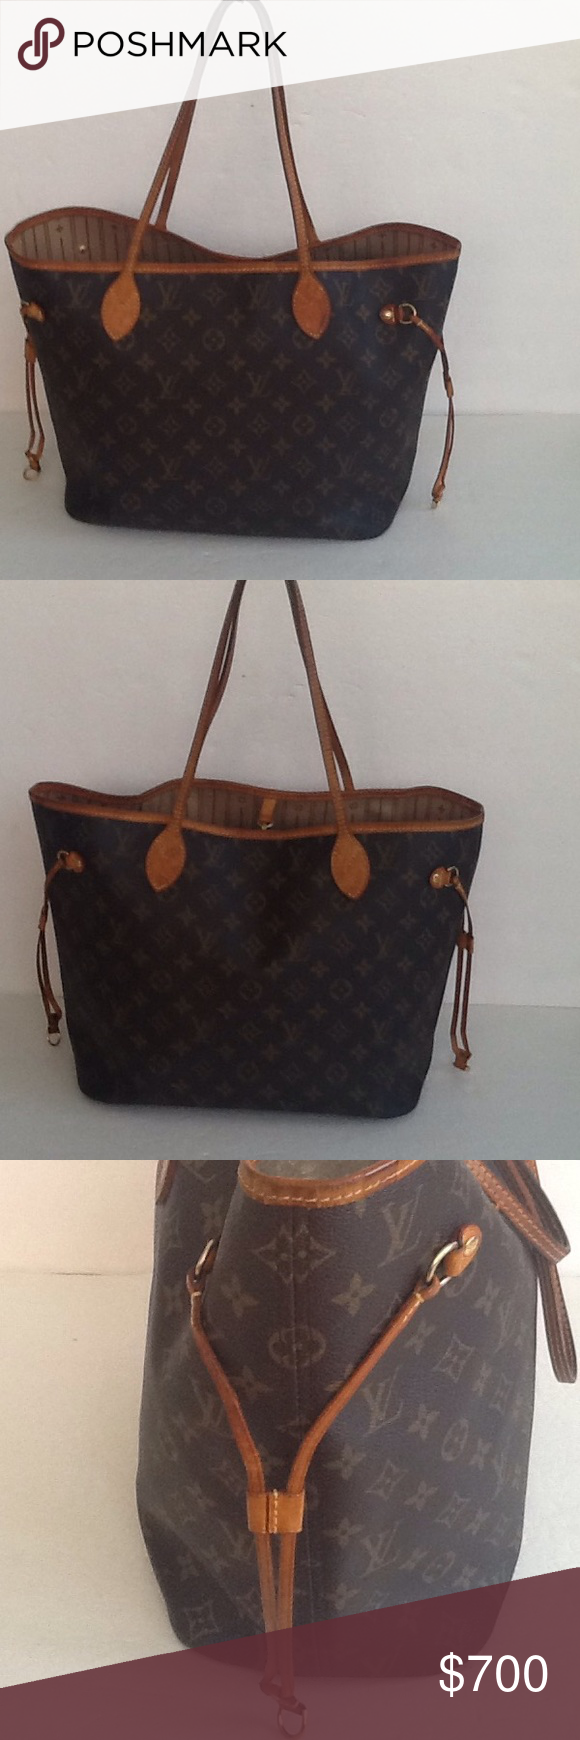 Authentic Louis Vuitton Never-full MM Monogram Bag Straps and leather trim showed signs of used and are darker in the middle. The canvas is in a good condition. The date code is CA 1038. Some light ink stains inside the bag Louis Vuitton Bags Shoulder Bags